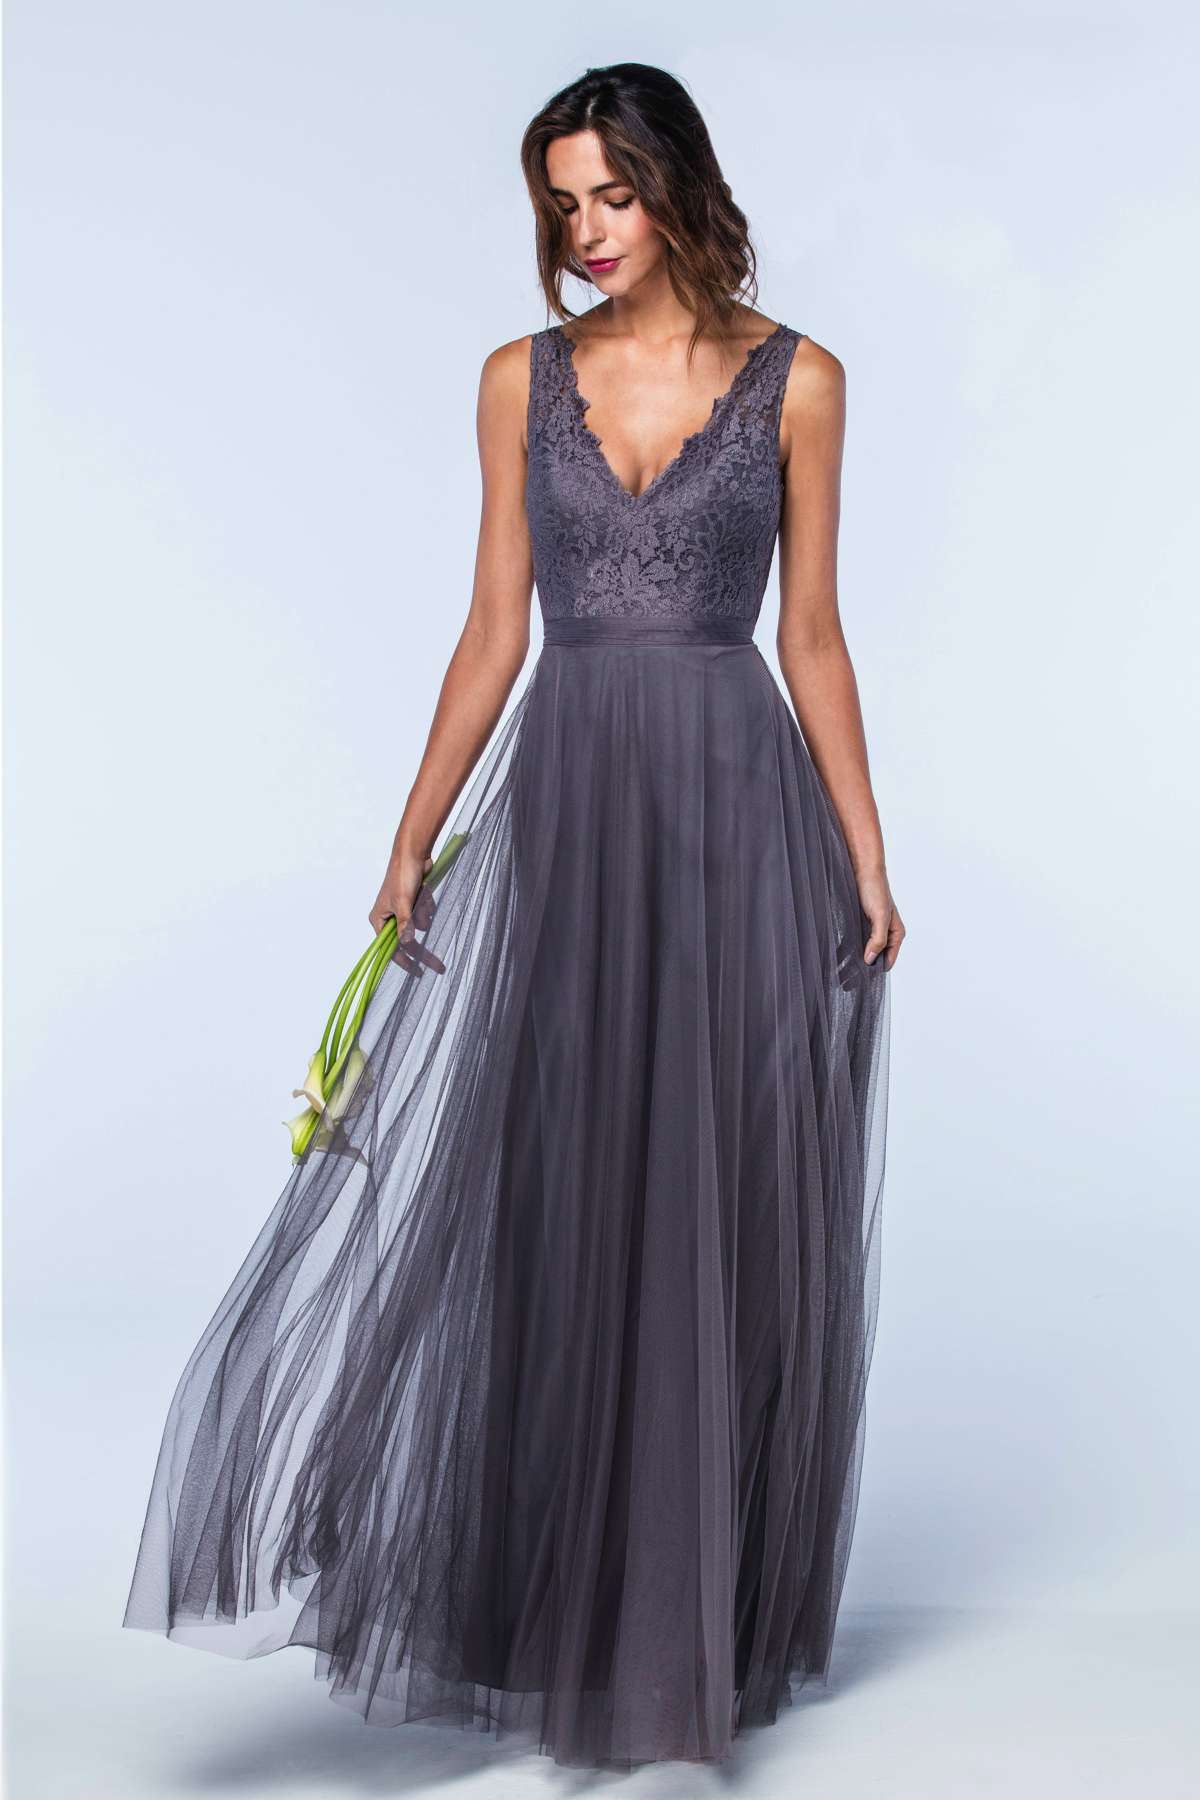 Plus size bridesmaid dresses under 50 dollars gallery braidsmaid must have winter bridesmaid dresses love our wedding watters style 2600 ombrellifo gallery ombrellifo Image collections